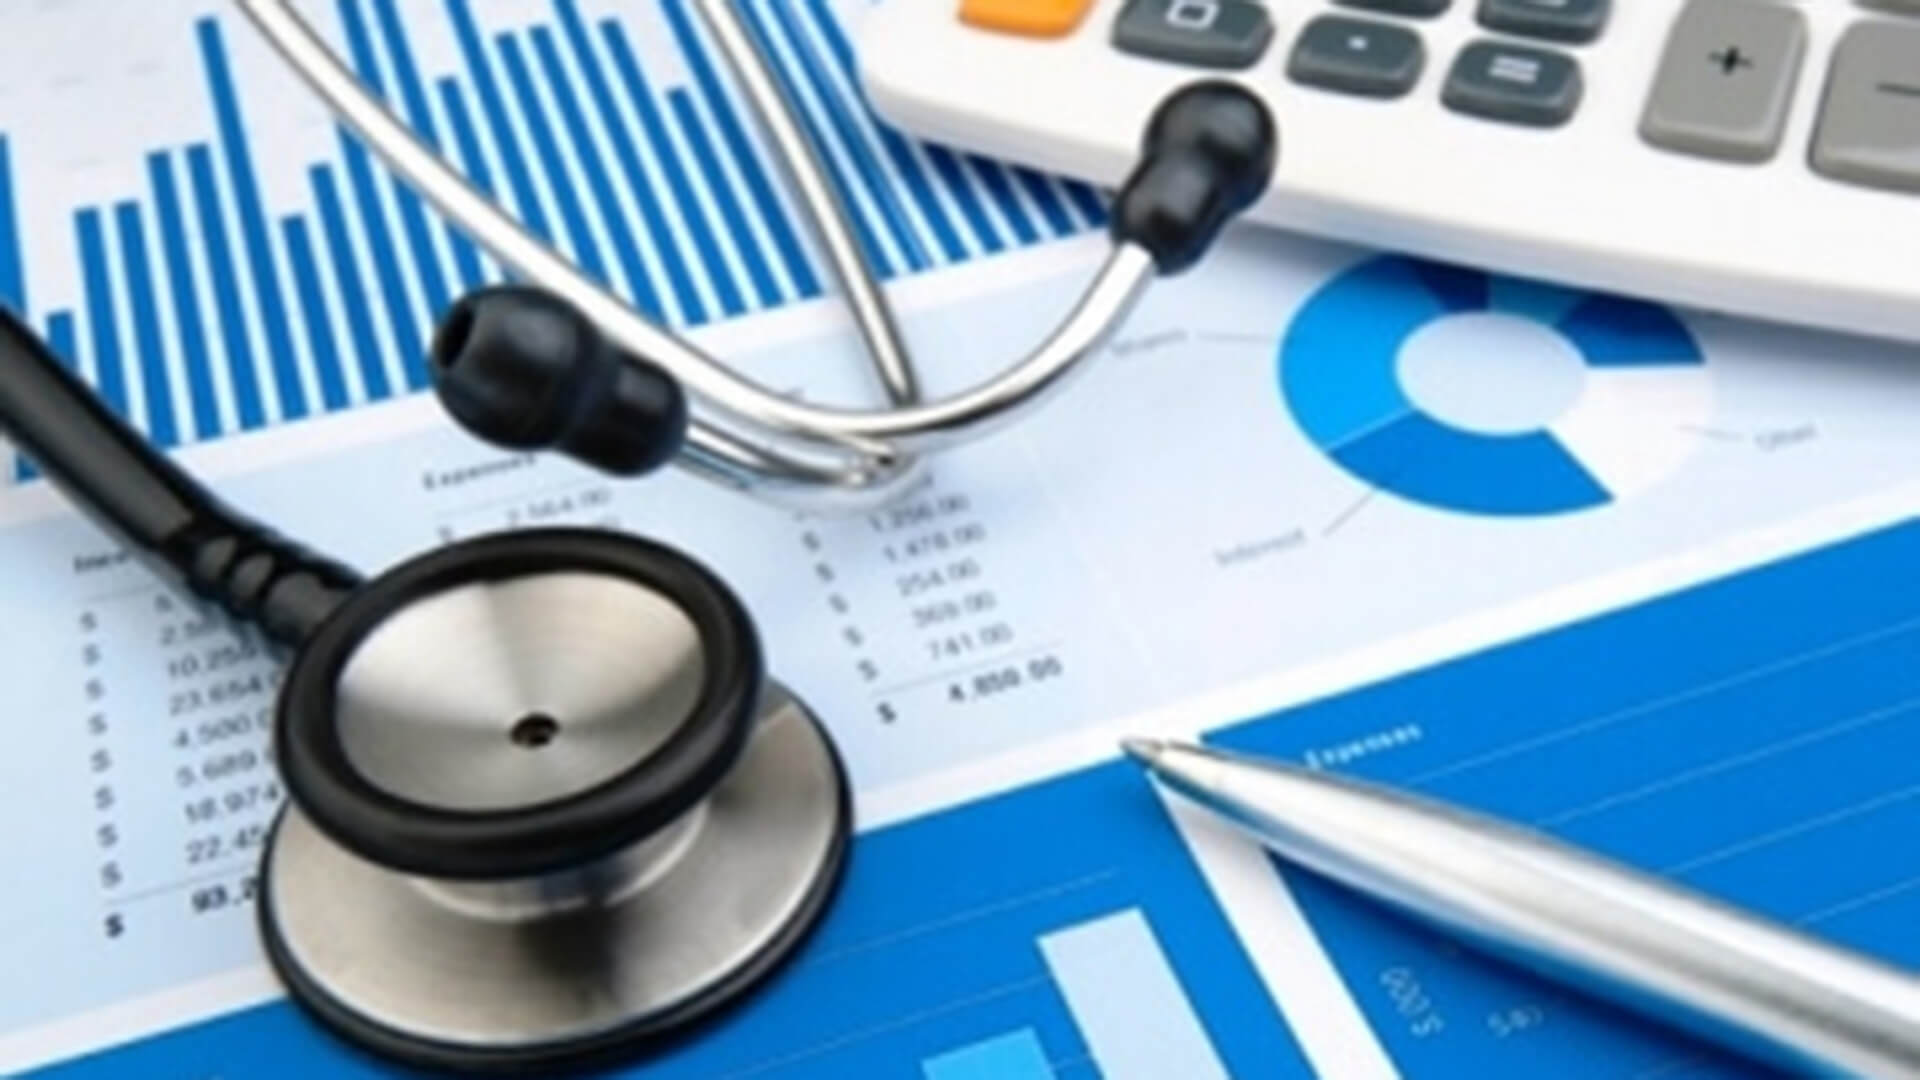 Healthcare Analytics Market to grow to $18.7bn